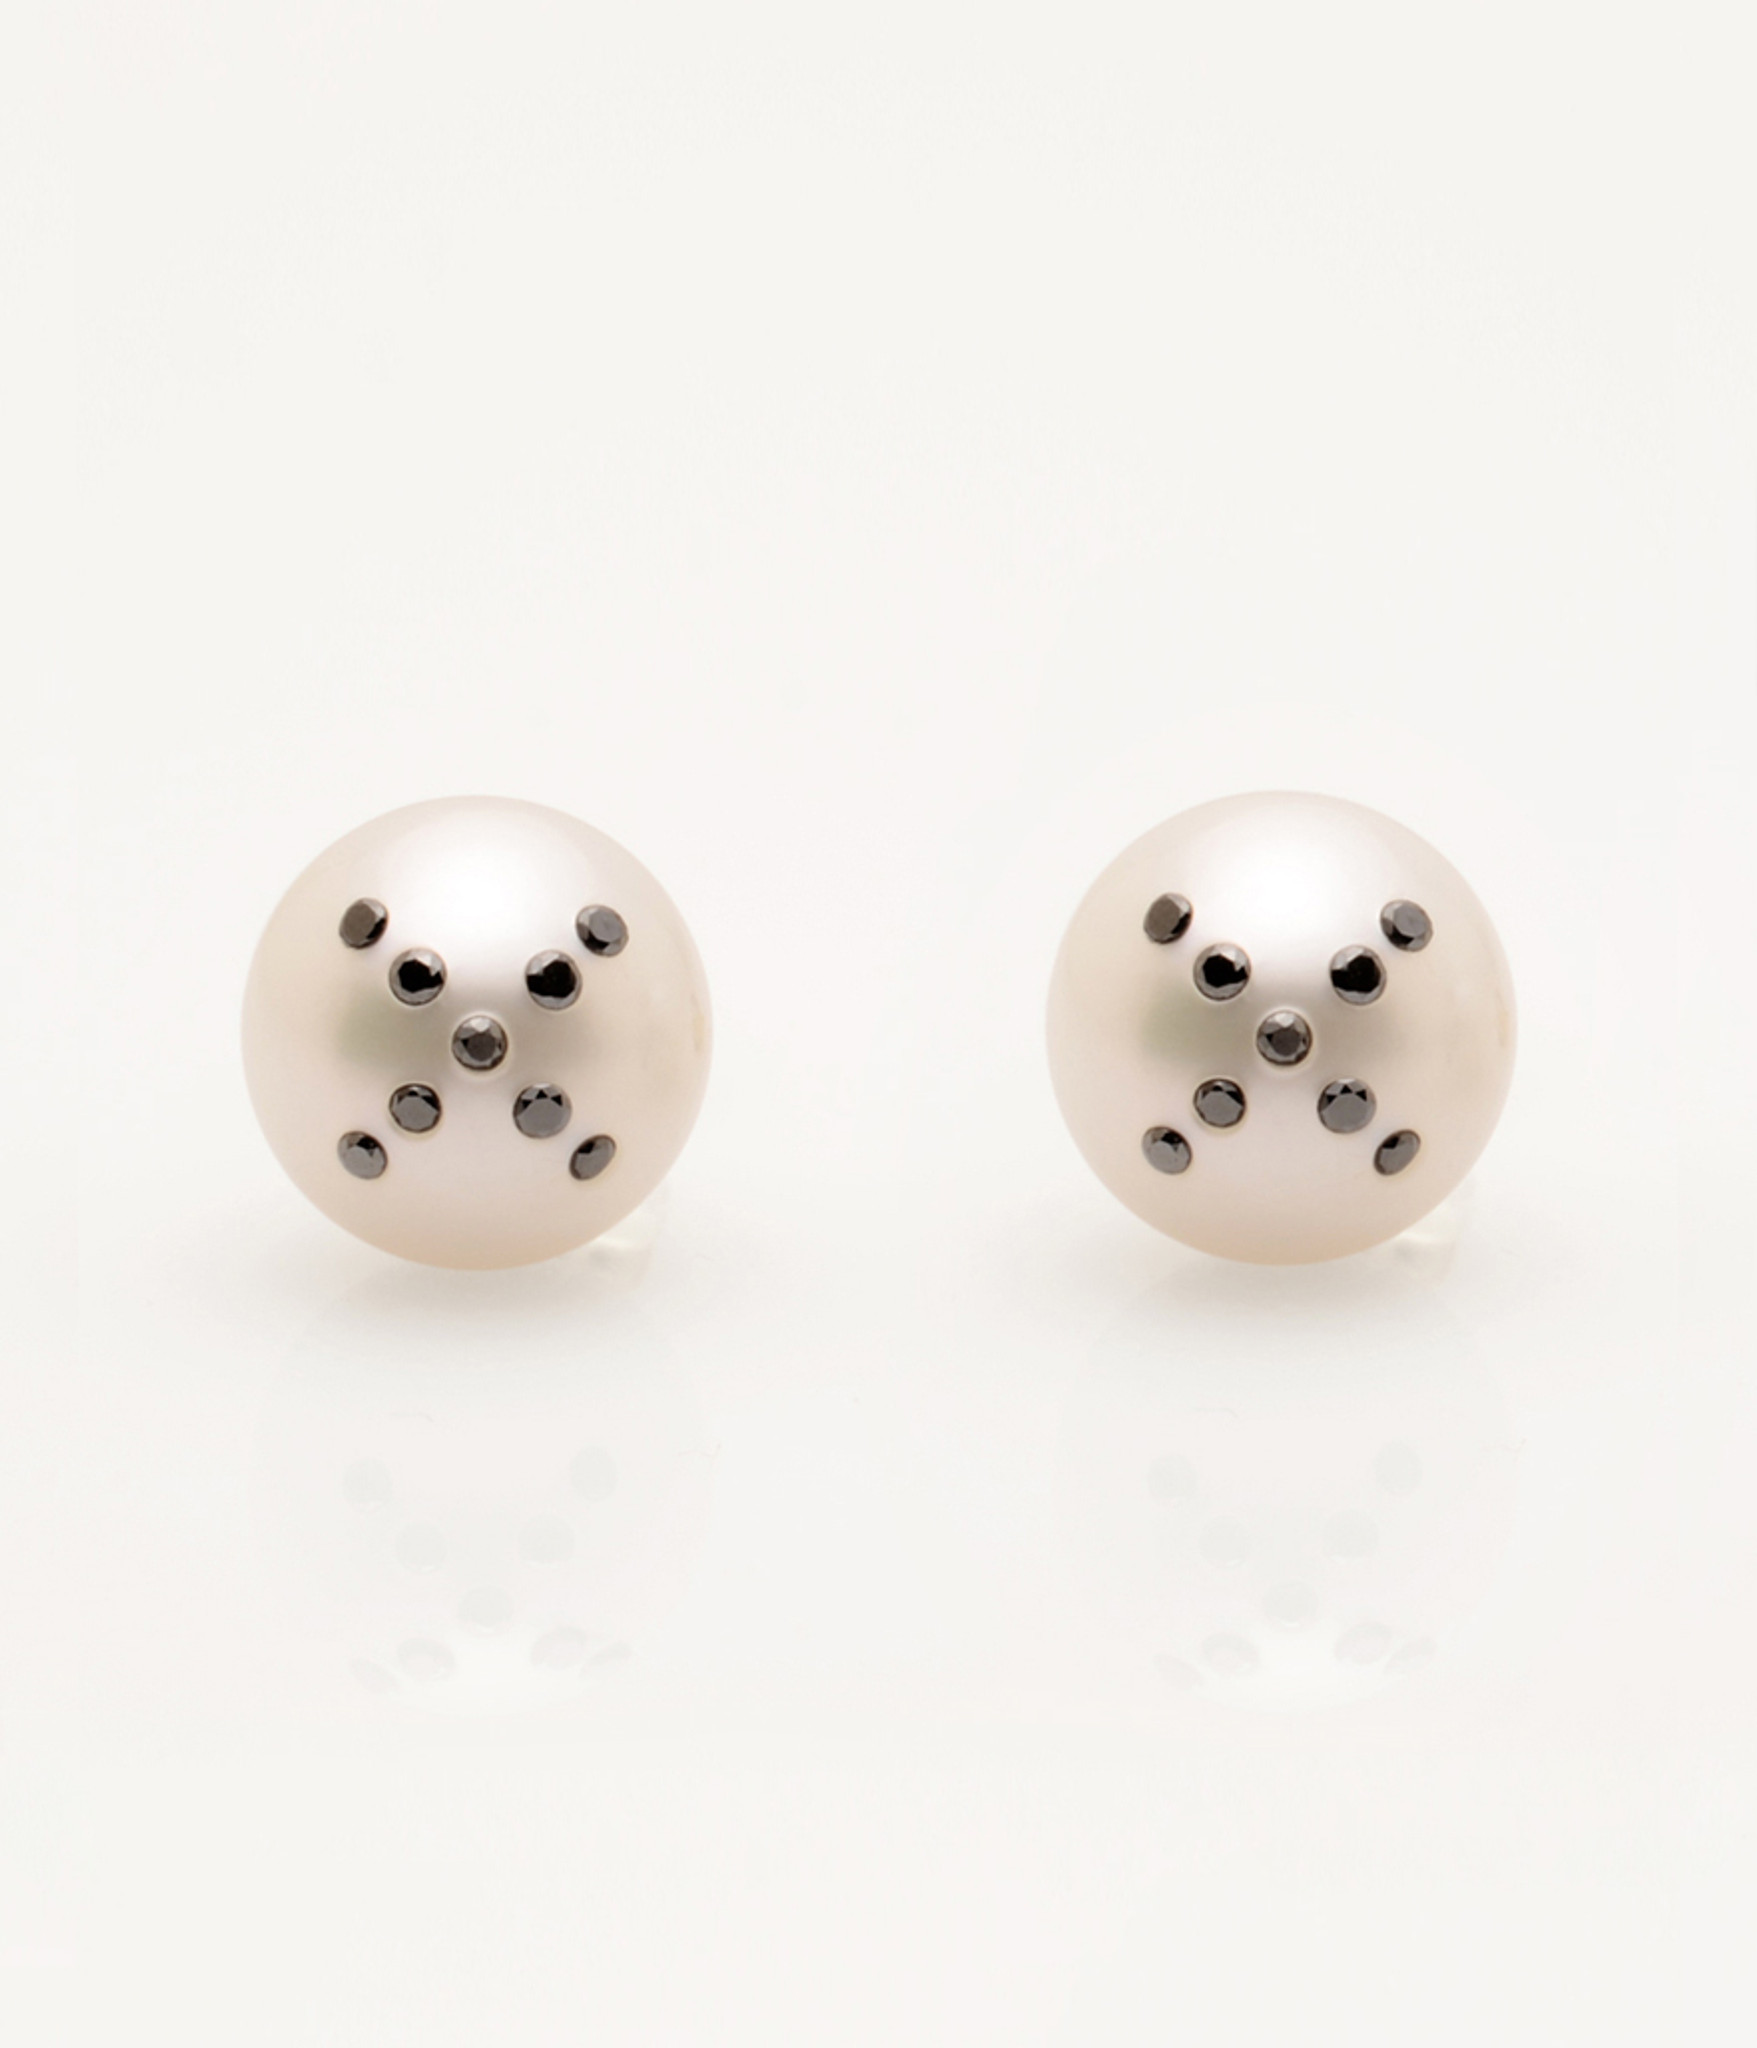 Cultured Freshwater Pearl Earrings with X Emoji Diamond Pave and 14k Gold Posts by Jewelry Designer Nektar De Stagni (8-9-mm). May be matched with second X single earring.